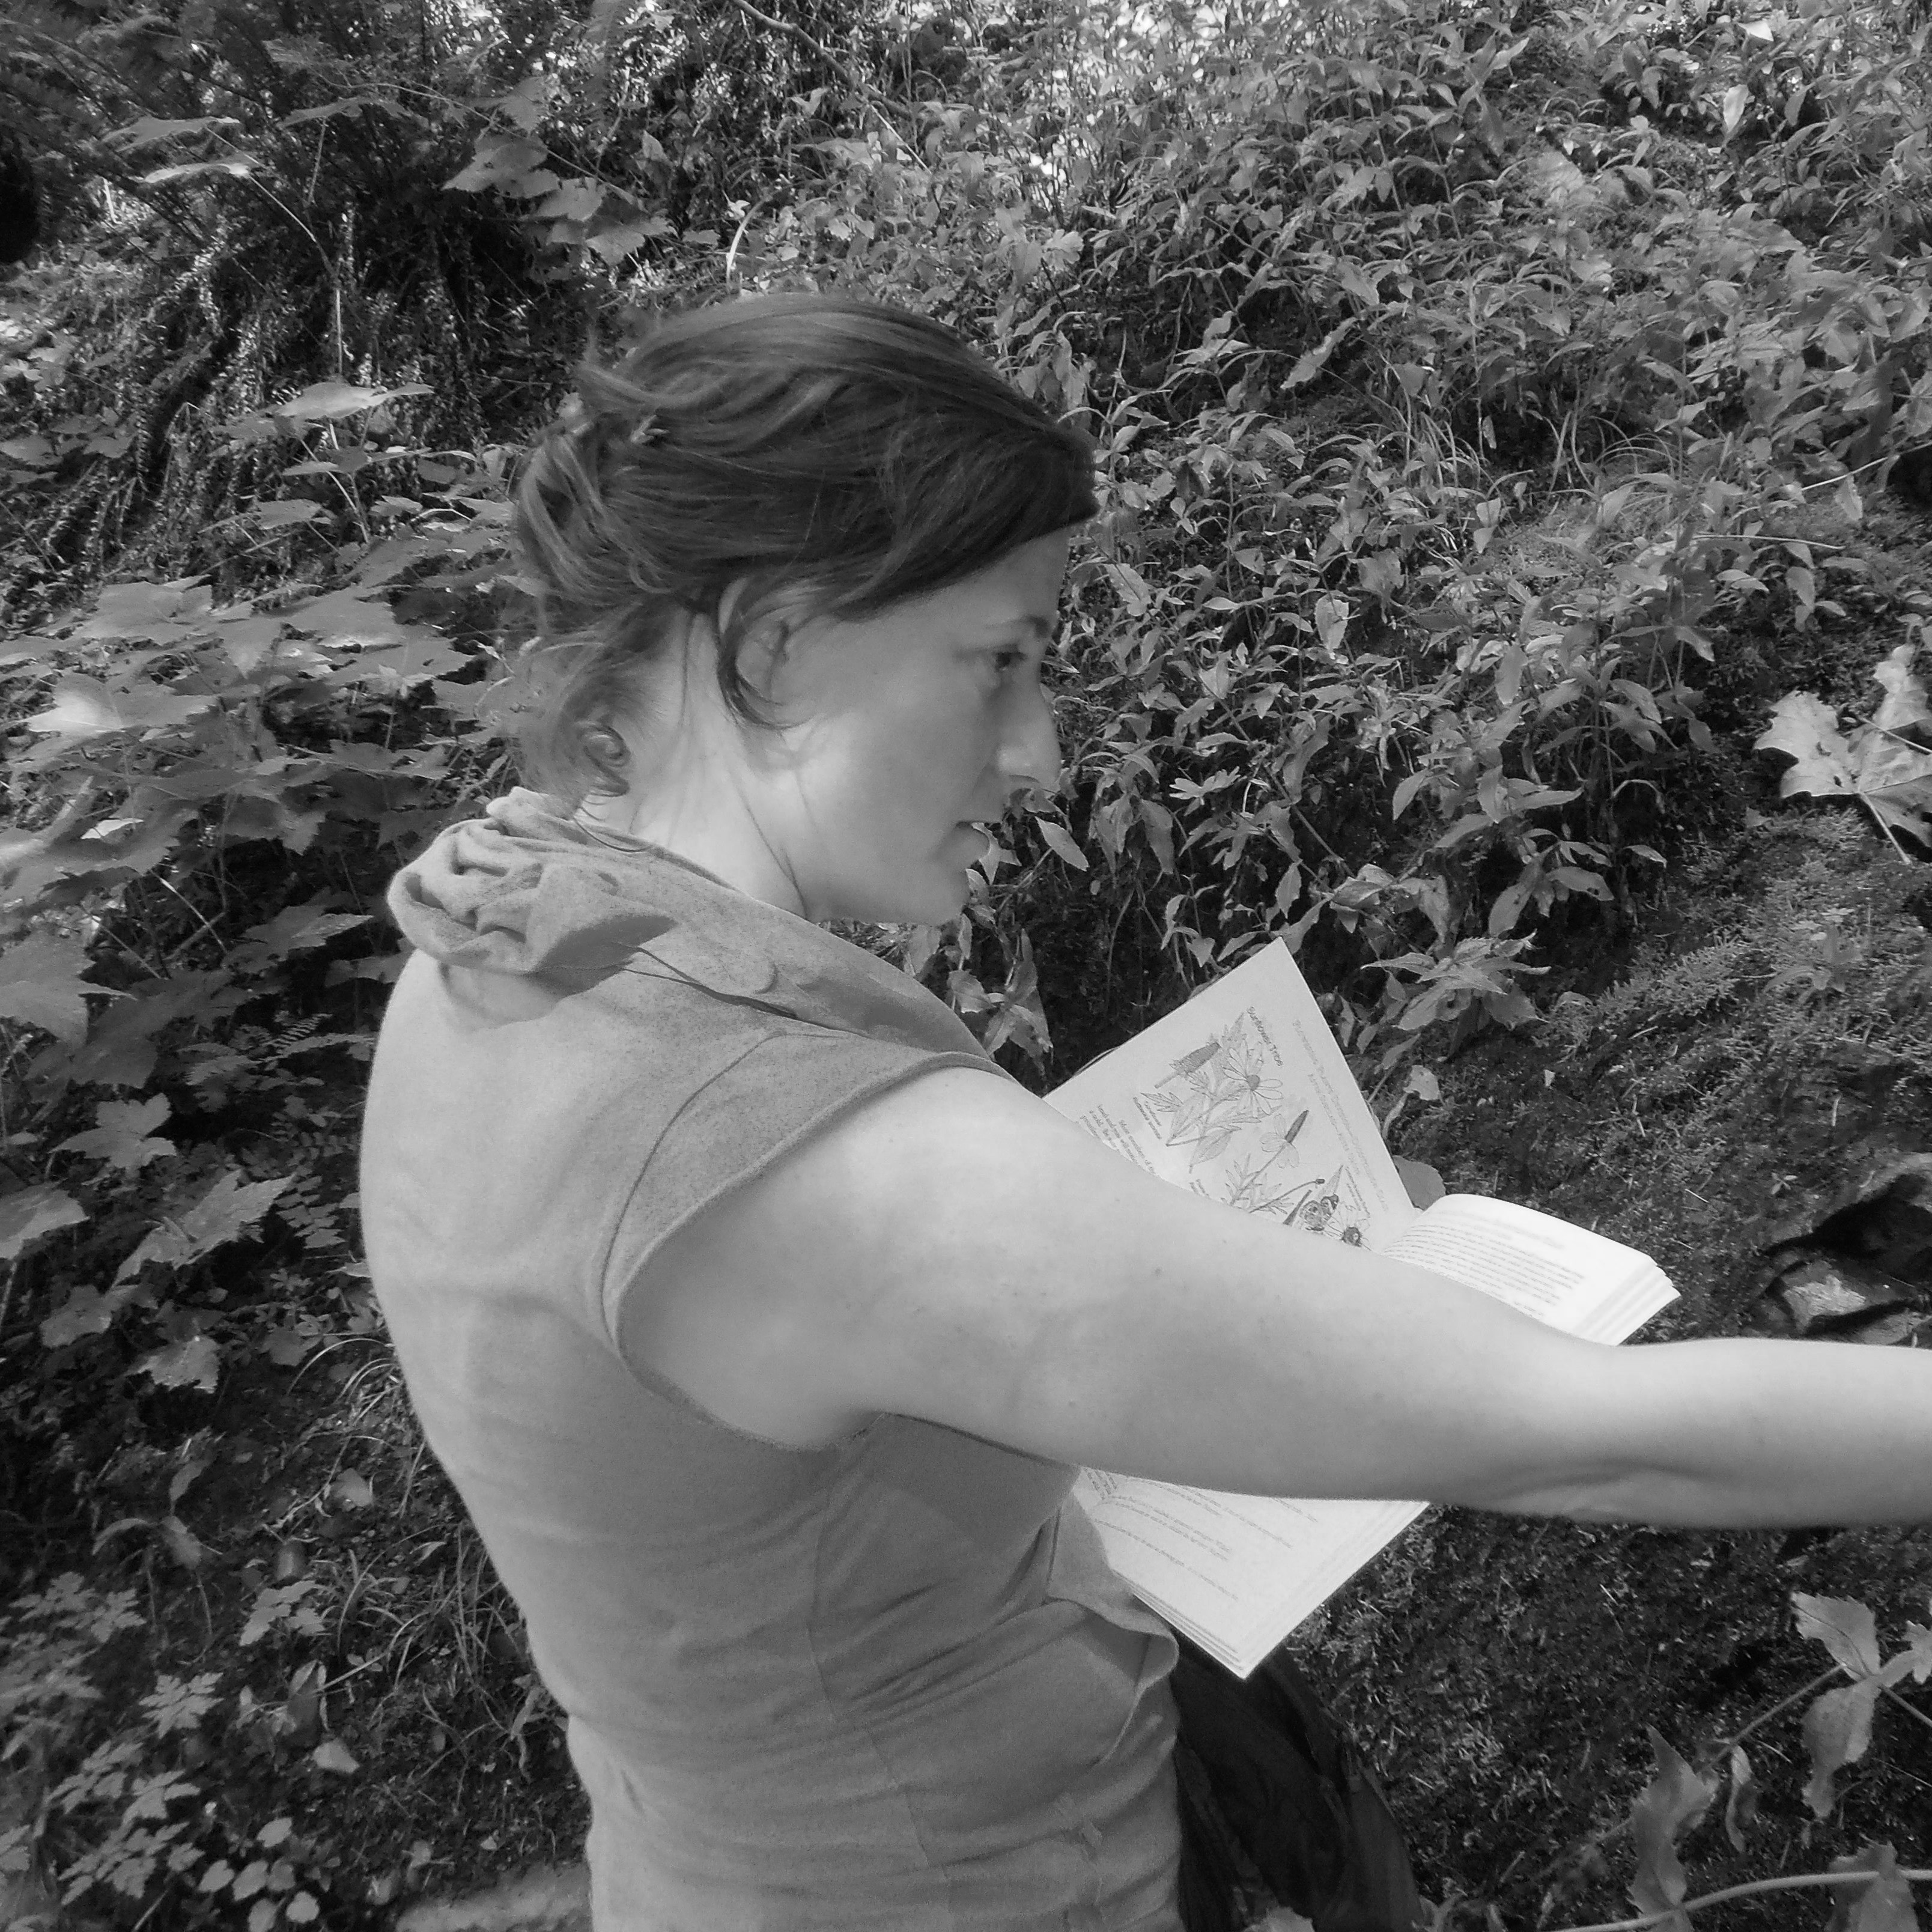 Black and white image of Tiffany Austin reading a book and reaching for a tree